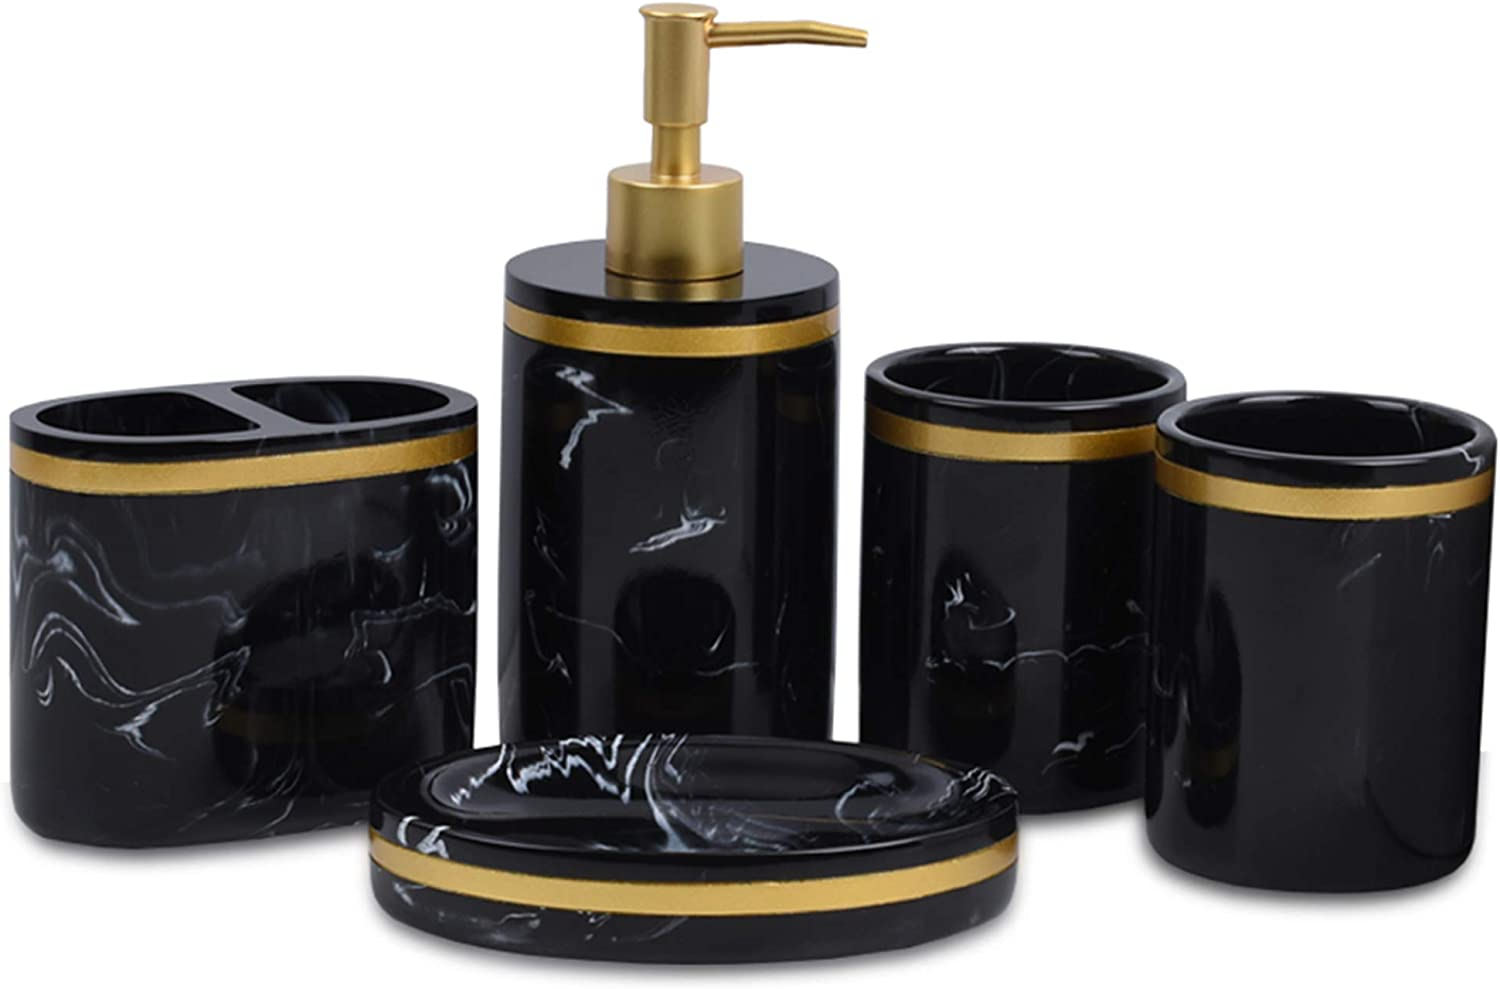 Jung Ford 5-Piece Bathroom Counter Top Accessory Set - Dispenser for Liquid Soap or Lotion, Soap Dish, 2 Tumblers and Toothbrush Holder, Marble Imitated Resin (Black)